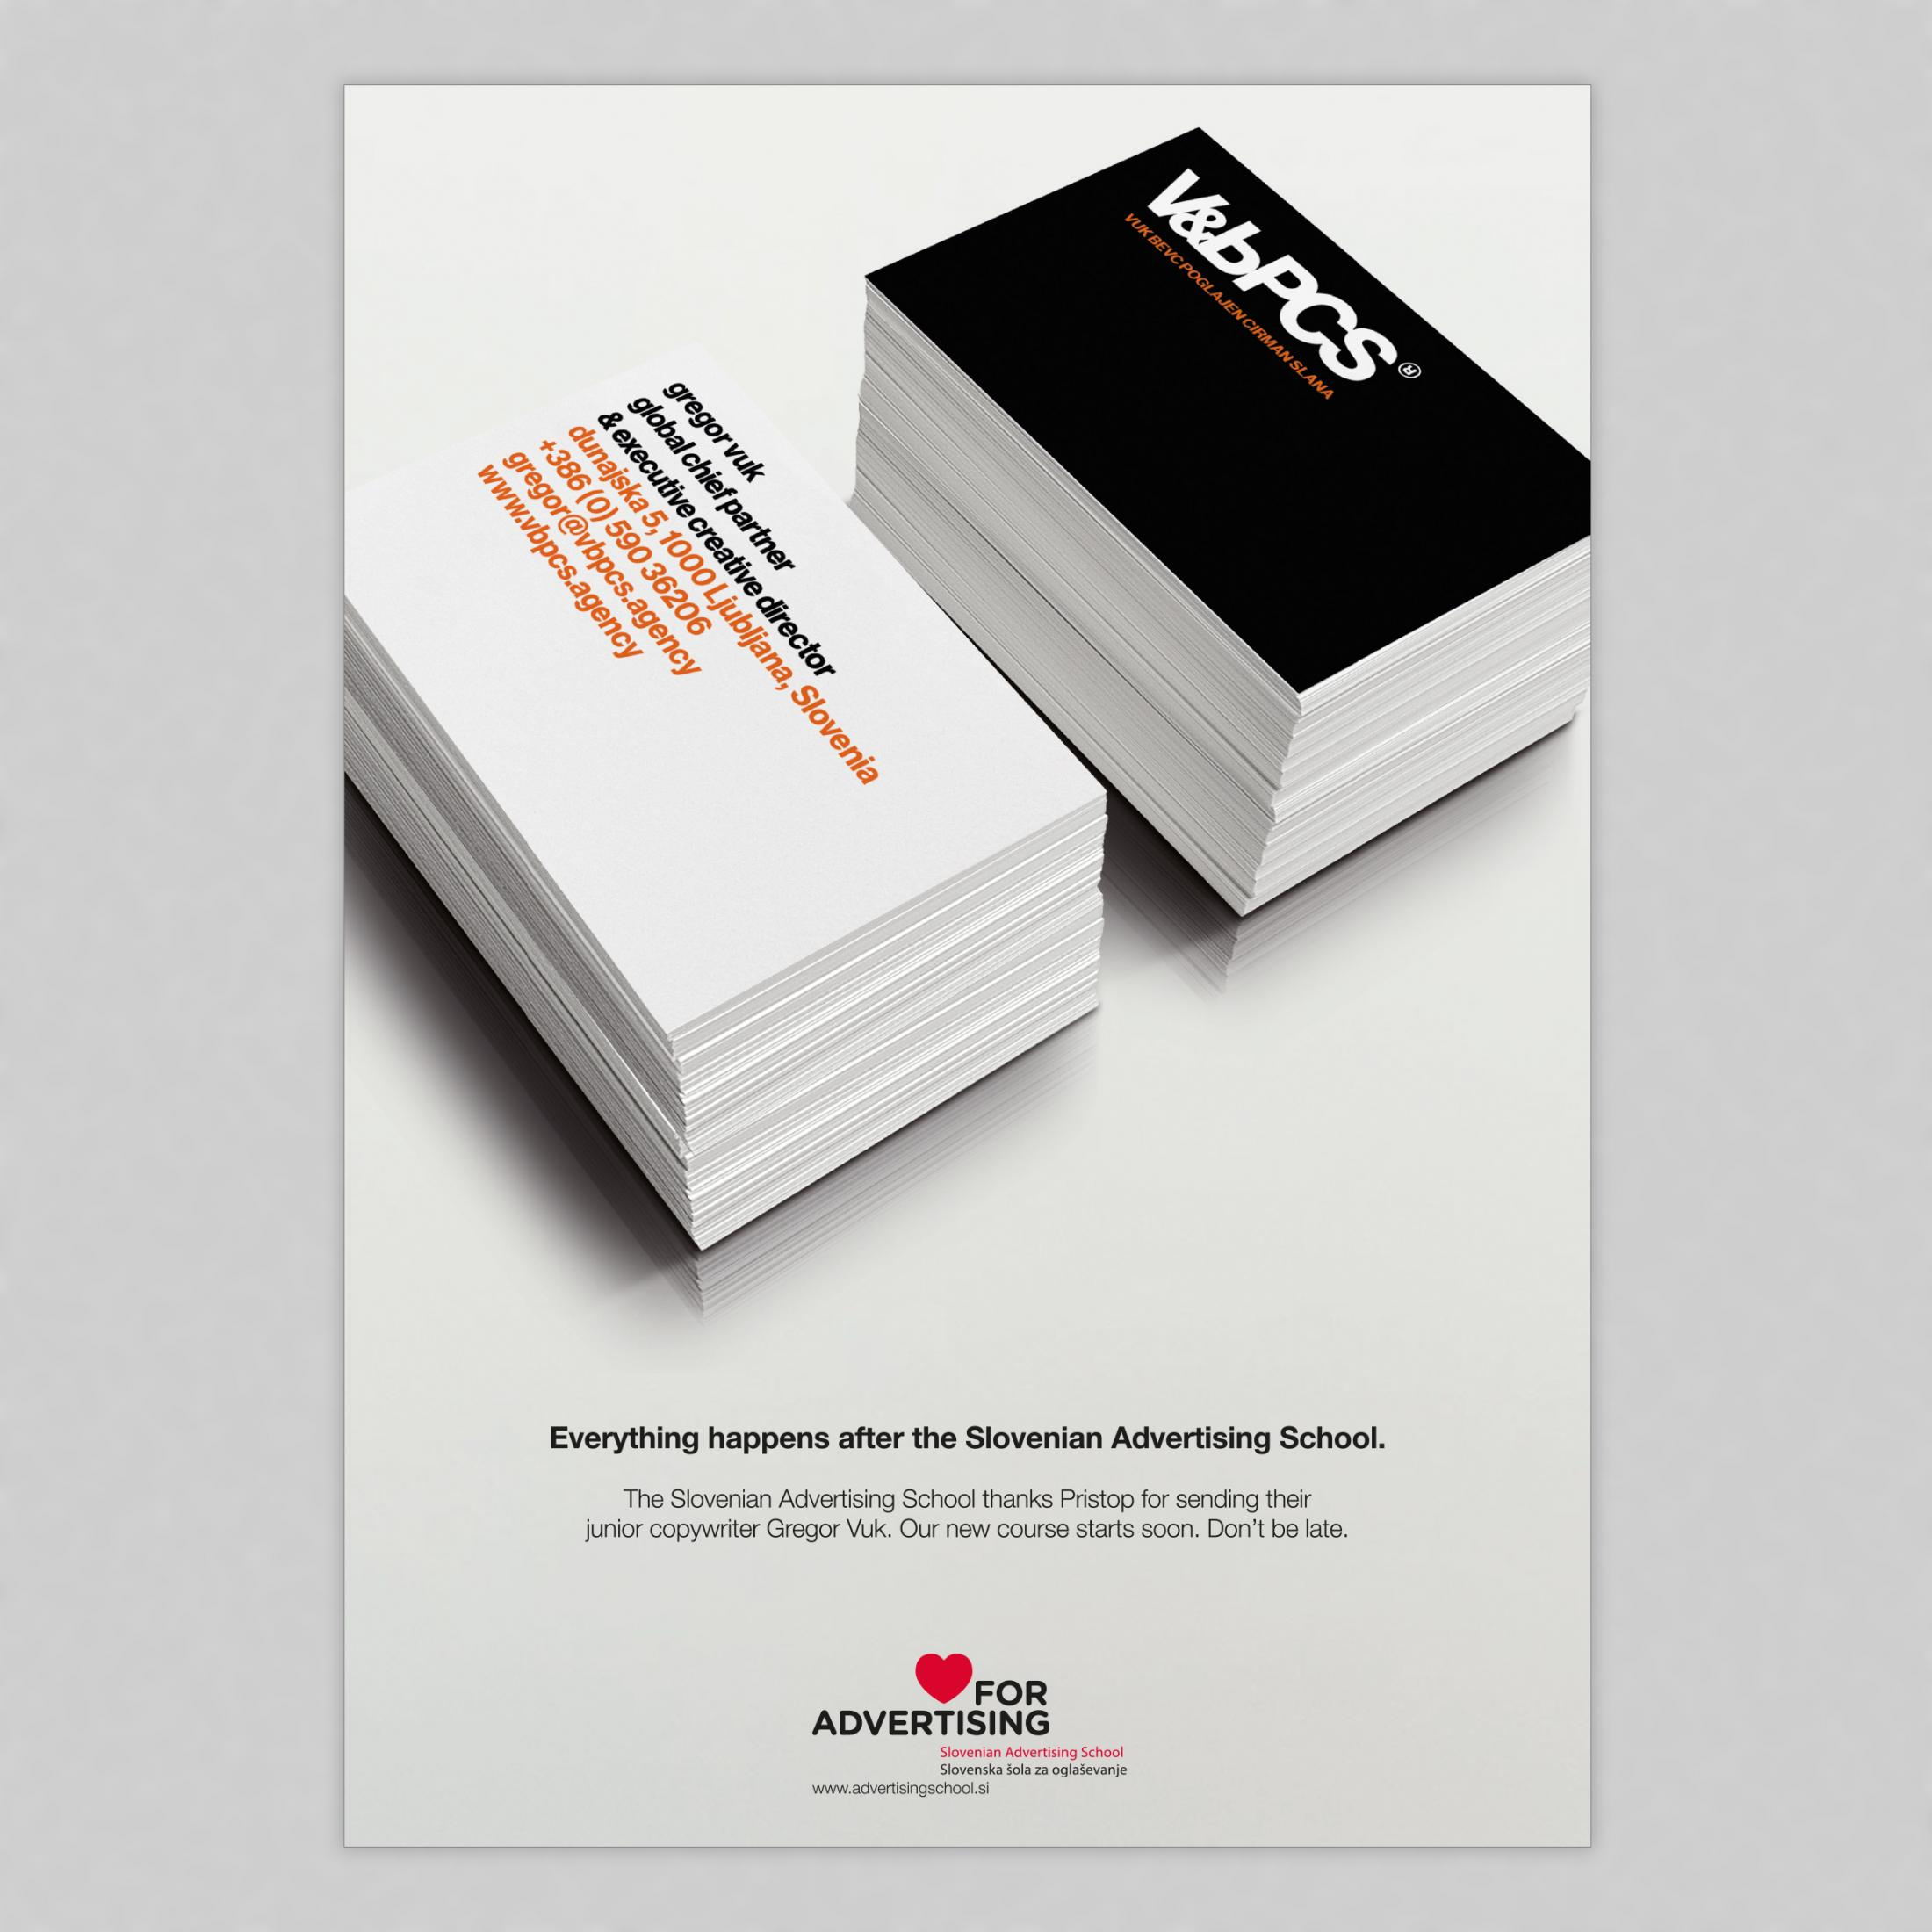 Slovenian Advertising School Outdoor Ad - Buzz cards for the future, 2